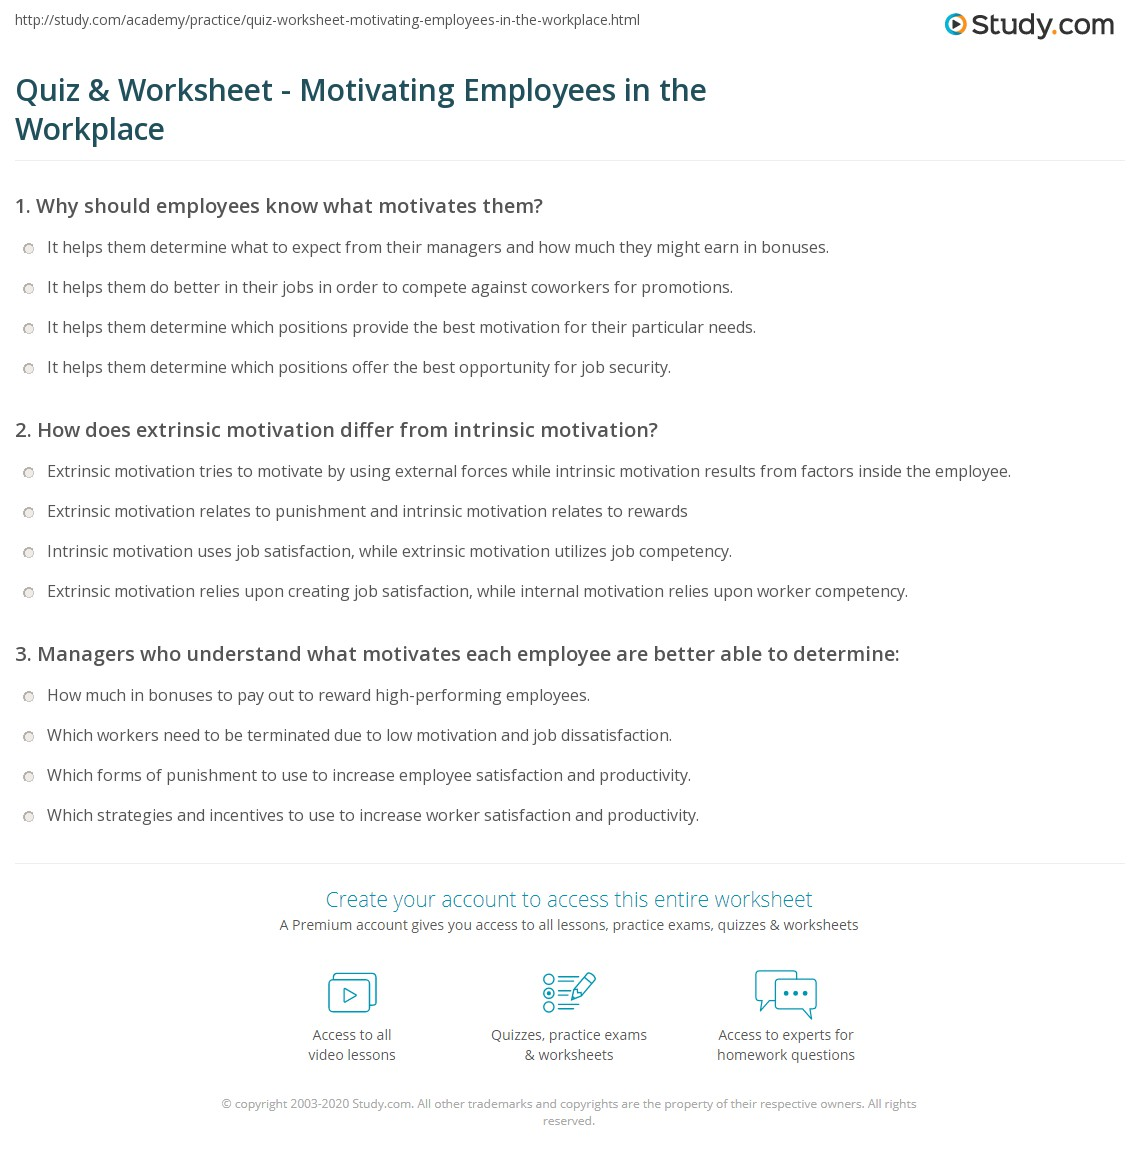 quiz worksheet motivating employees in the workplace com print motivating employees in the workplace methods importance worksheet